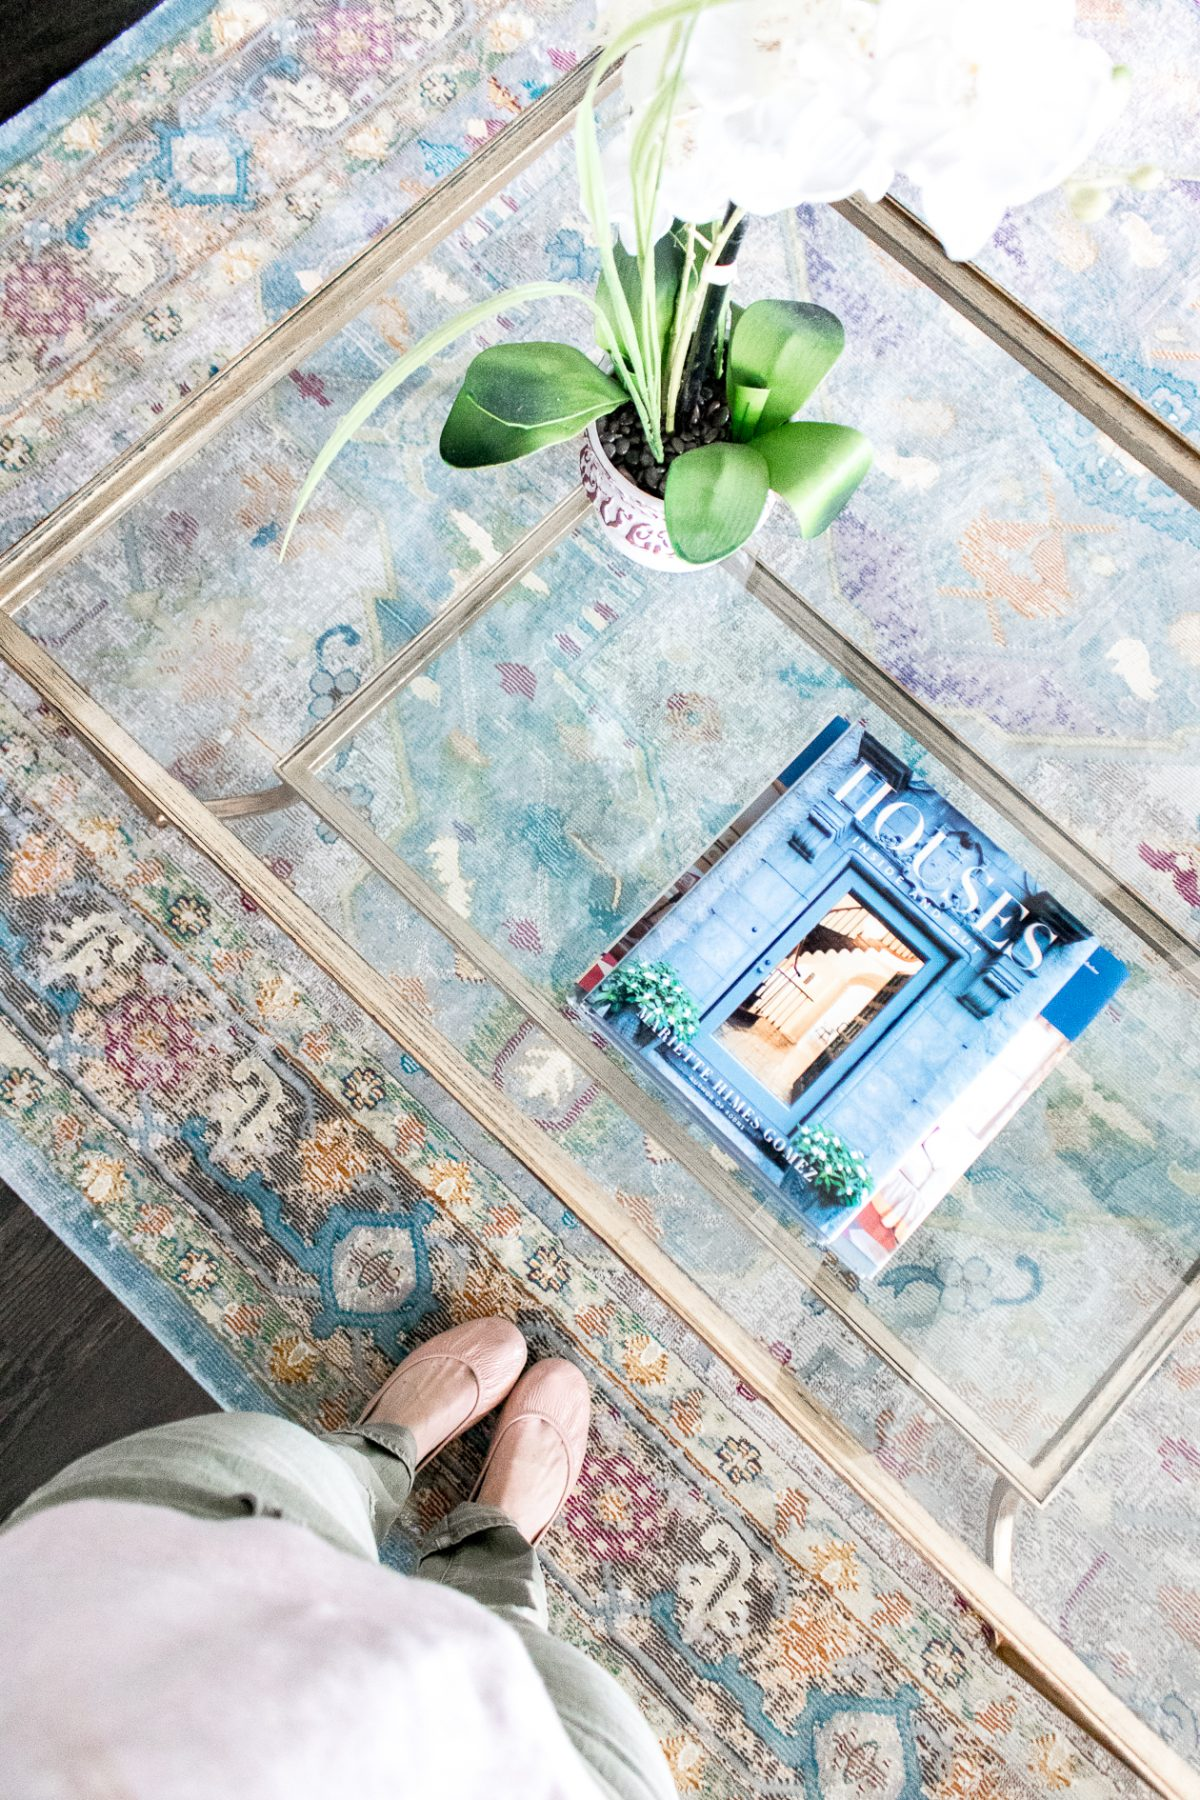 Ariel view of Nantucket Houses Coffee Table Book on Glass Coffee Table and Woman standing beside it wearing pink Tieks, green pants and a pink shirt